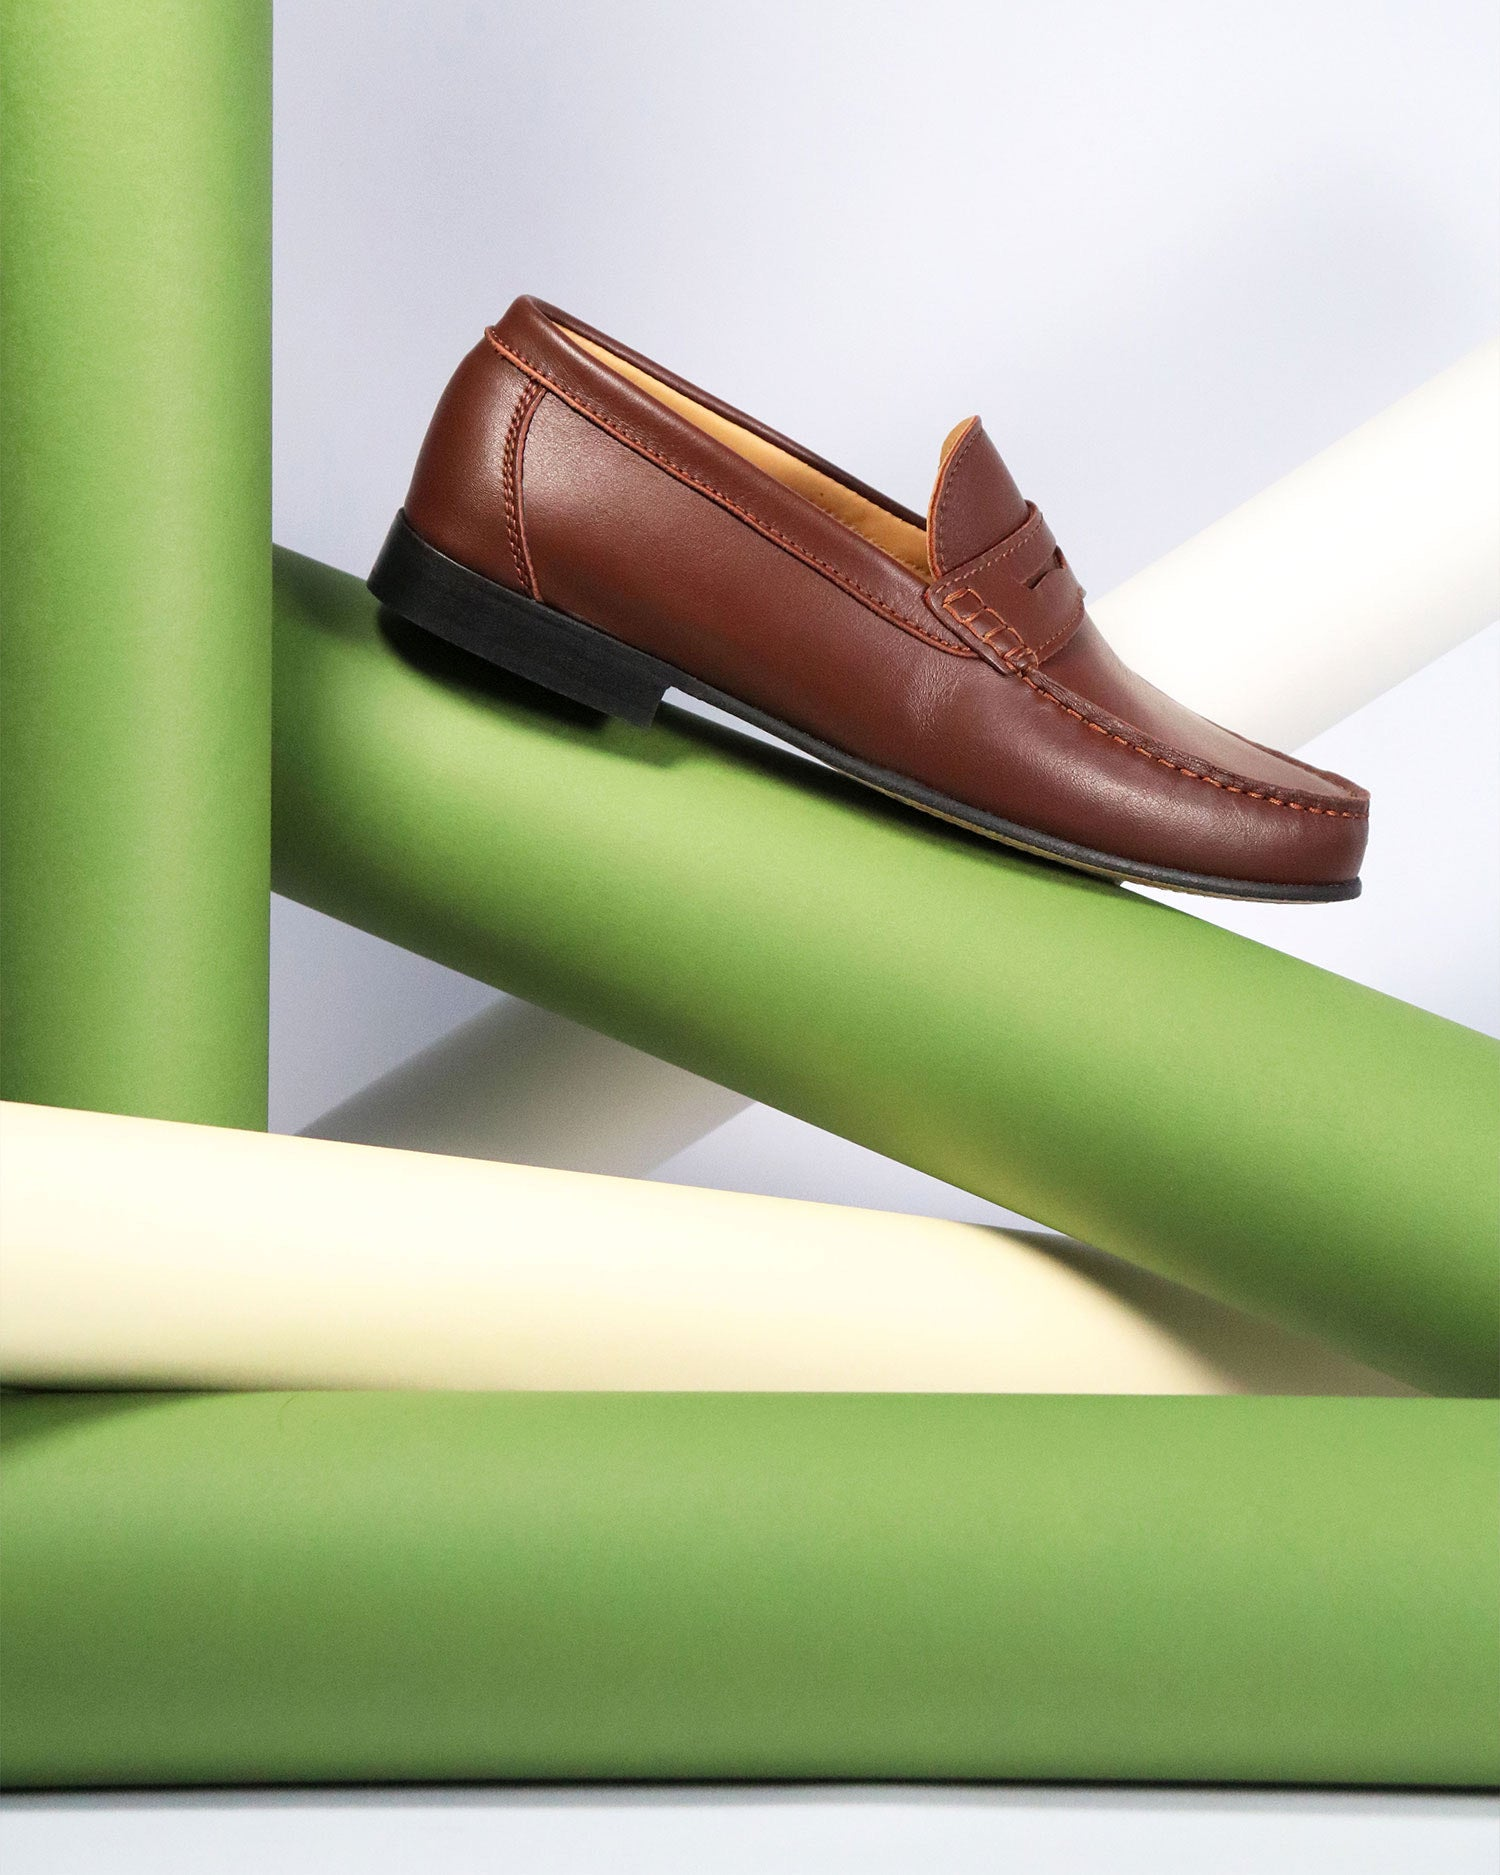 Hugs & Co. brown leather loafers